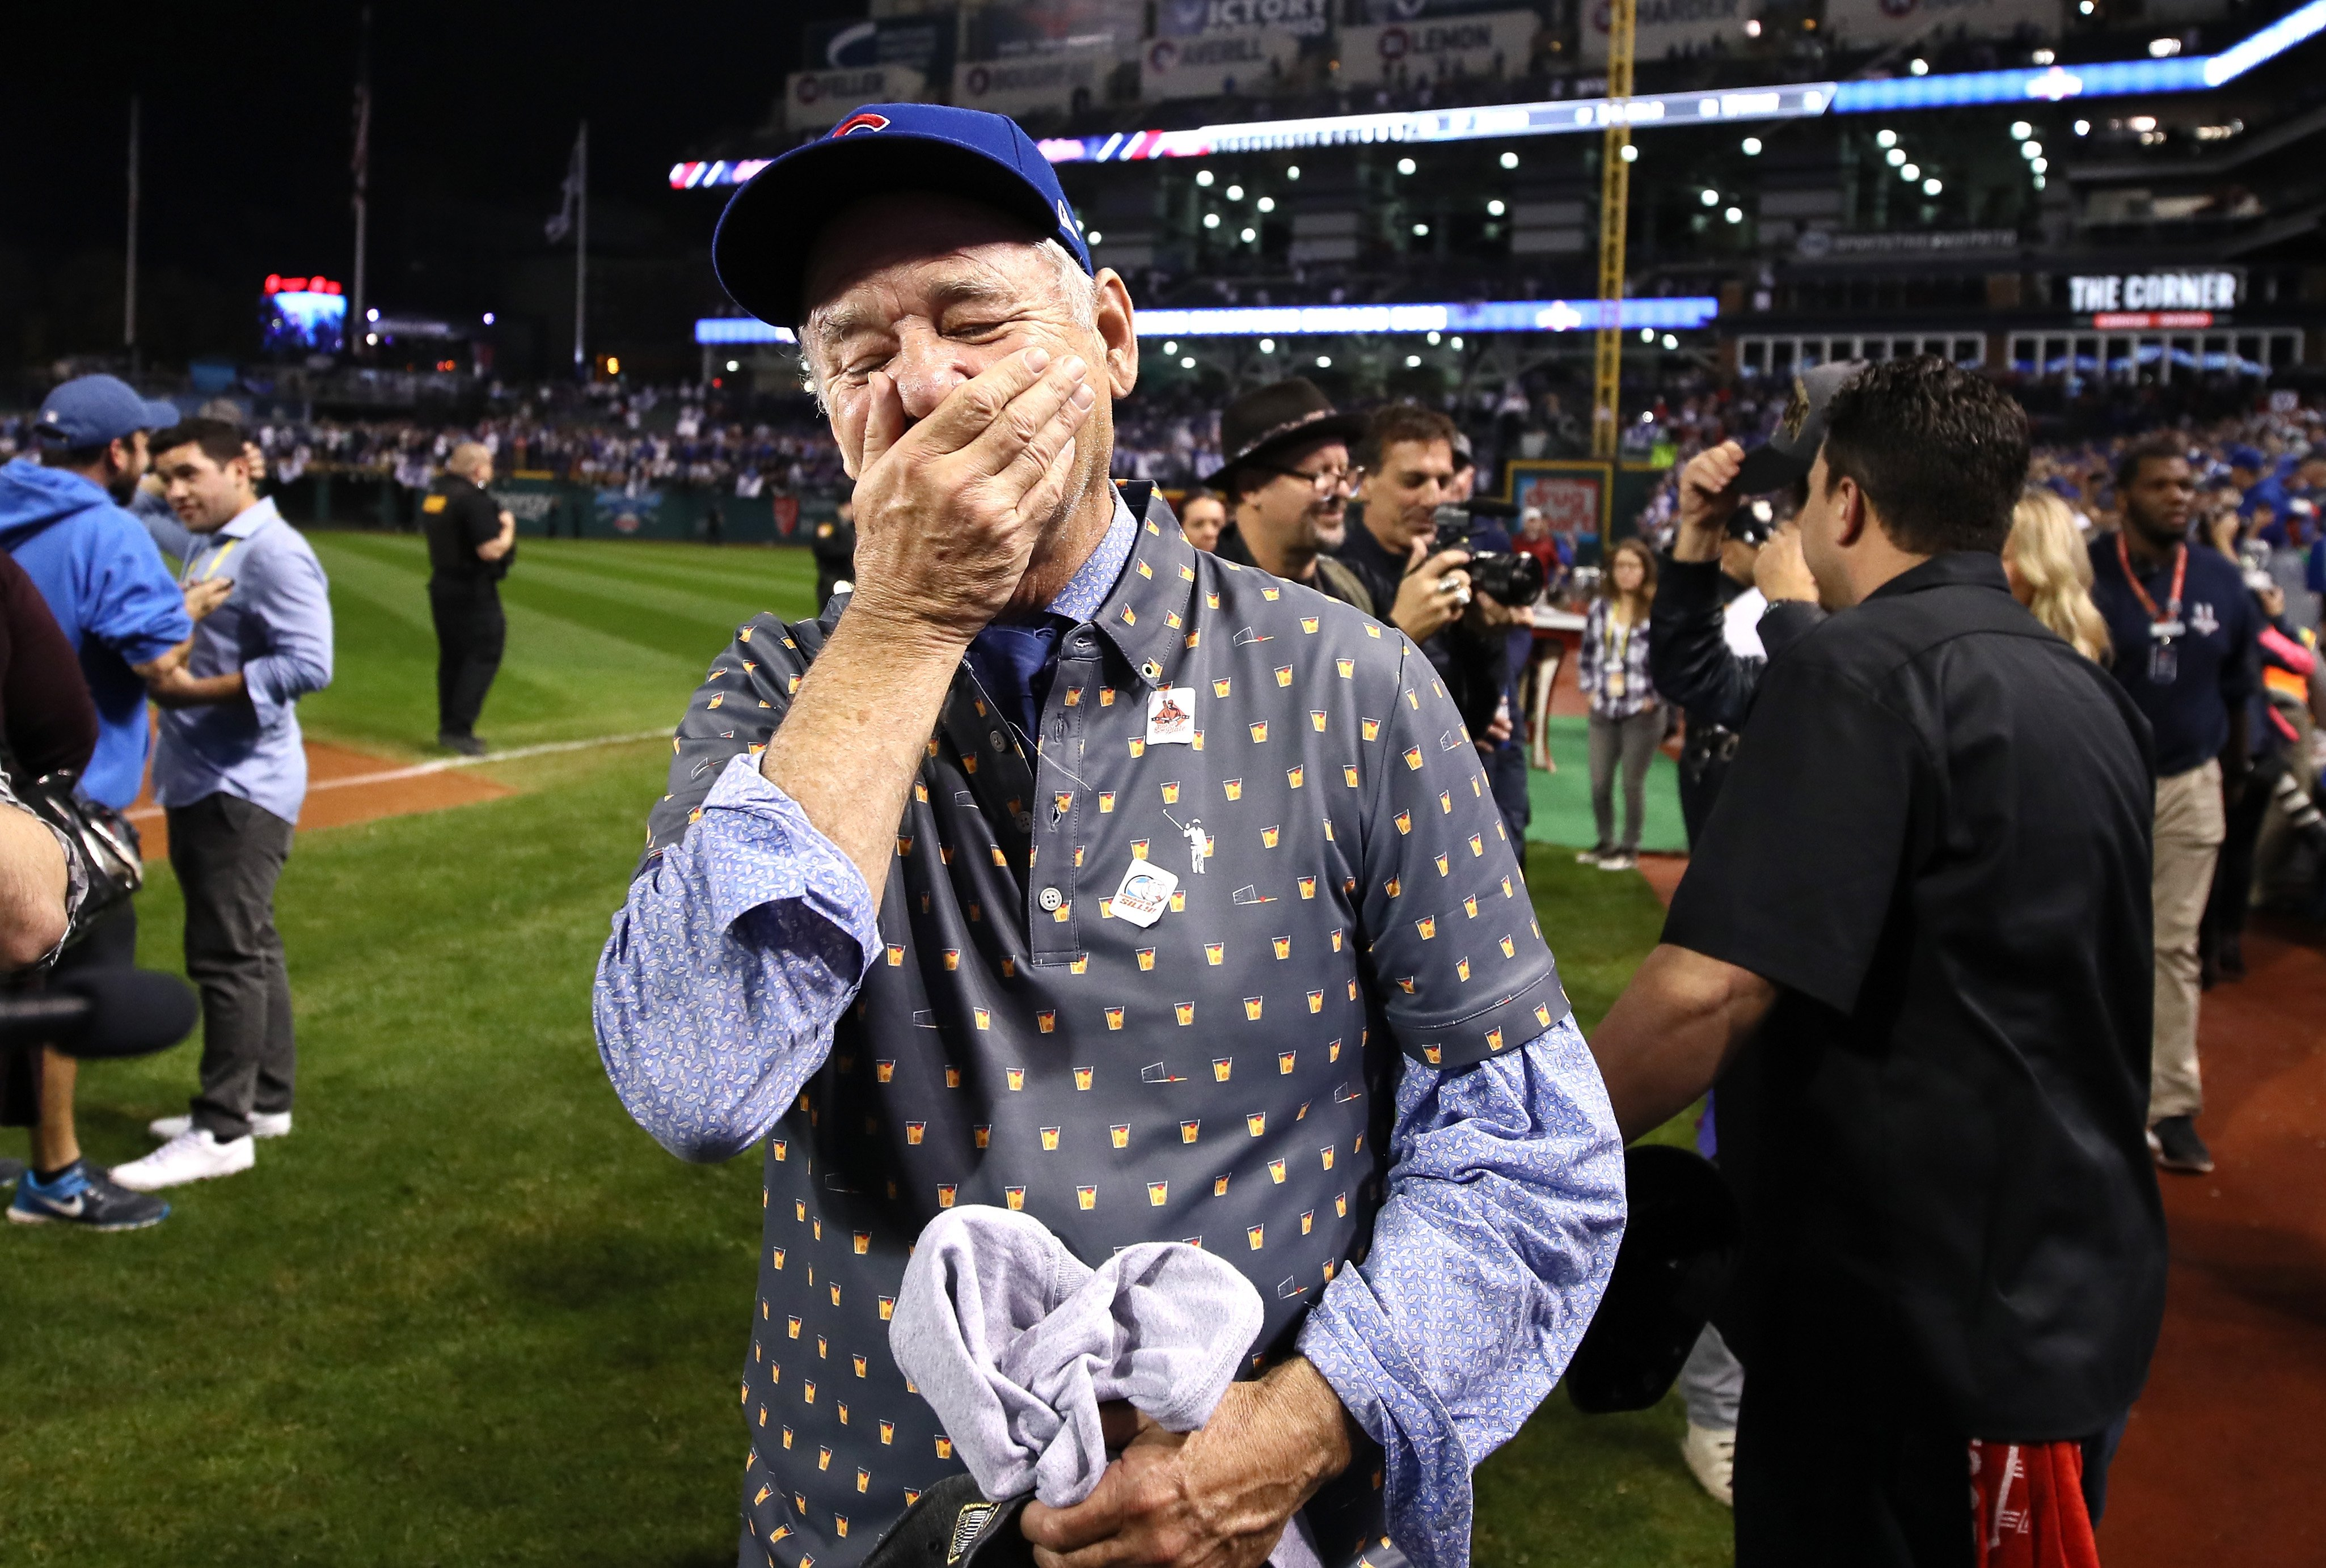 Bill Murray reacts on the field after the Chicago Cubs defeated the Cleveland Indians 8-7 in Game Seven of the 2016 World Series at Progressive Field on November 2, 2016 in Cleveland